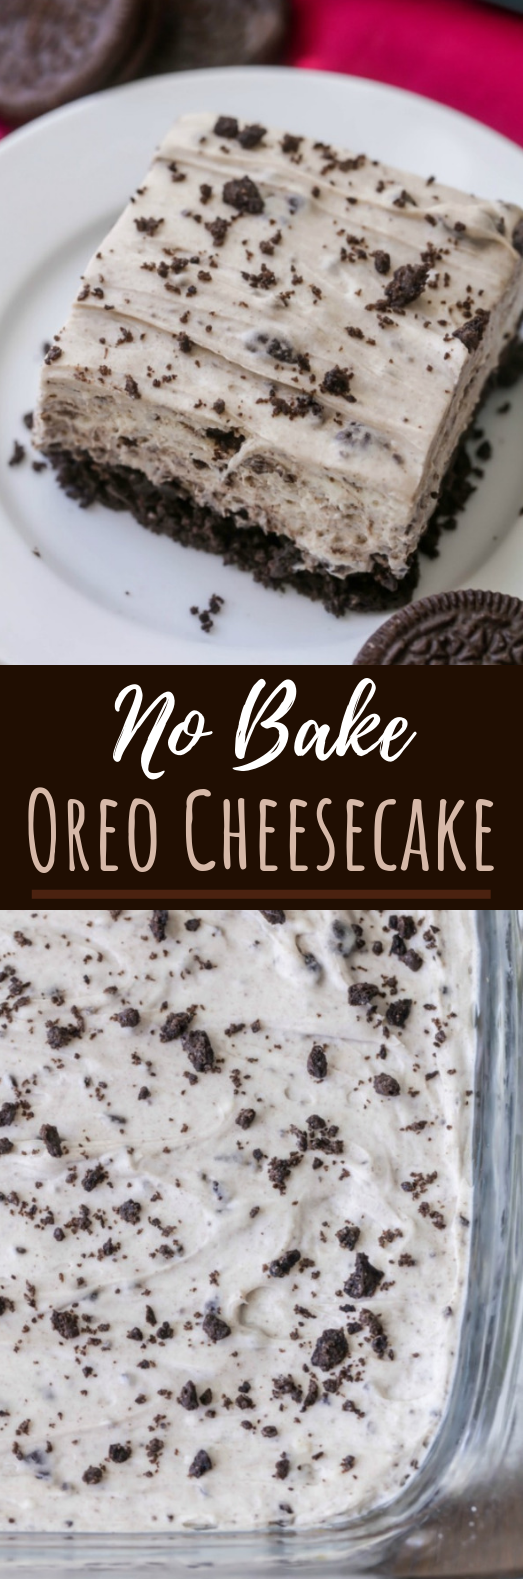 No Bake Oreo Cheesecake #summer #desserts